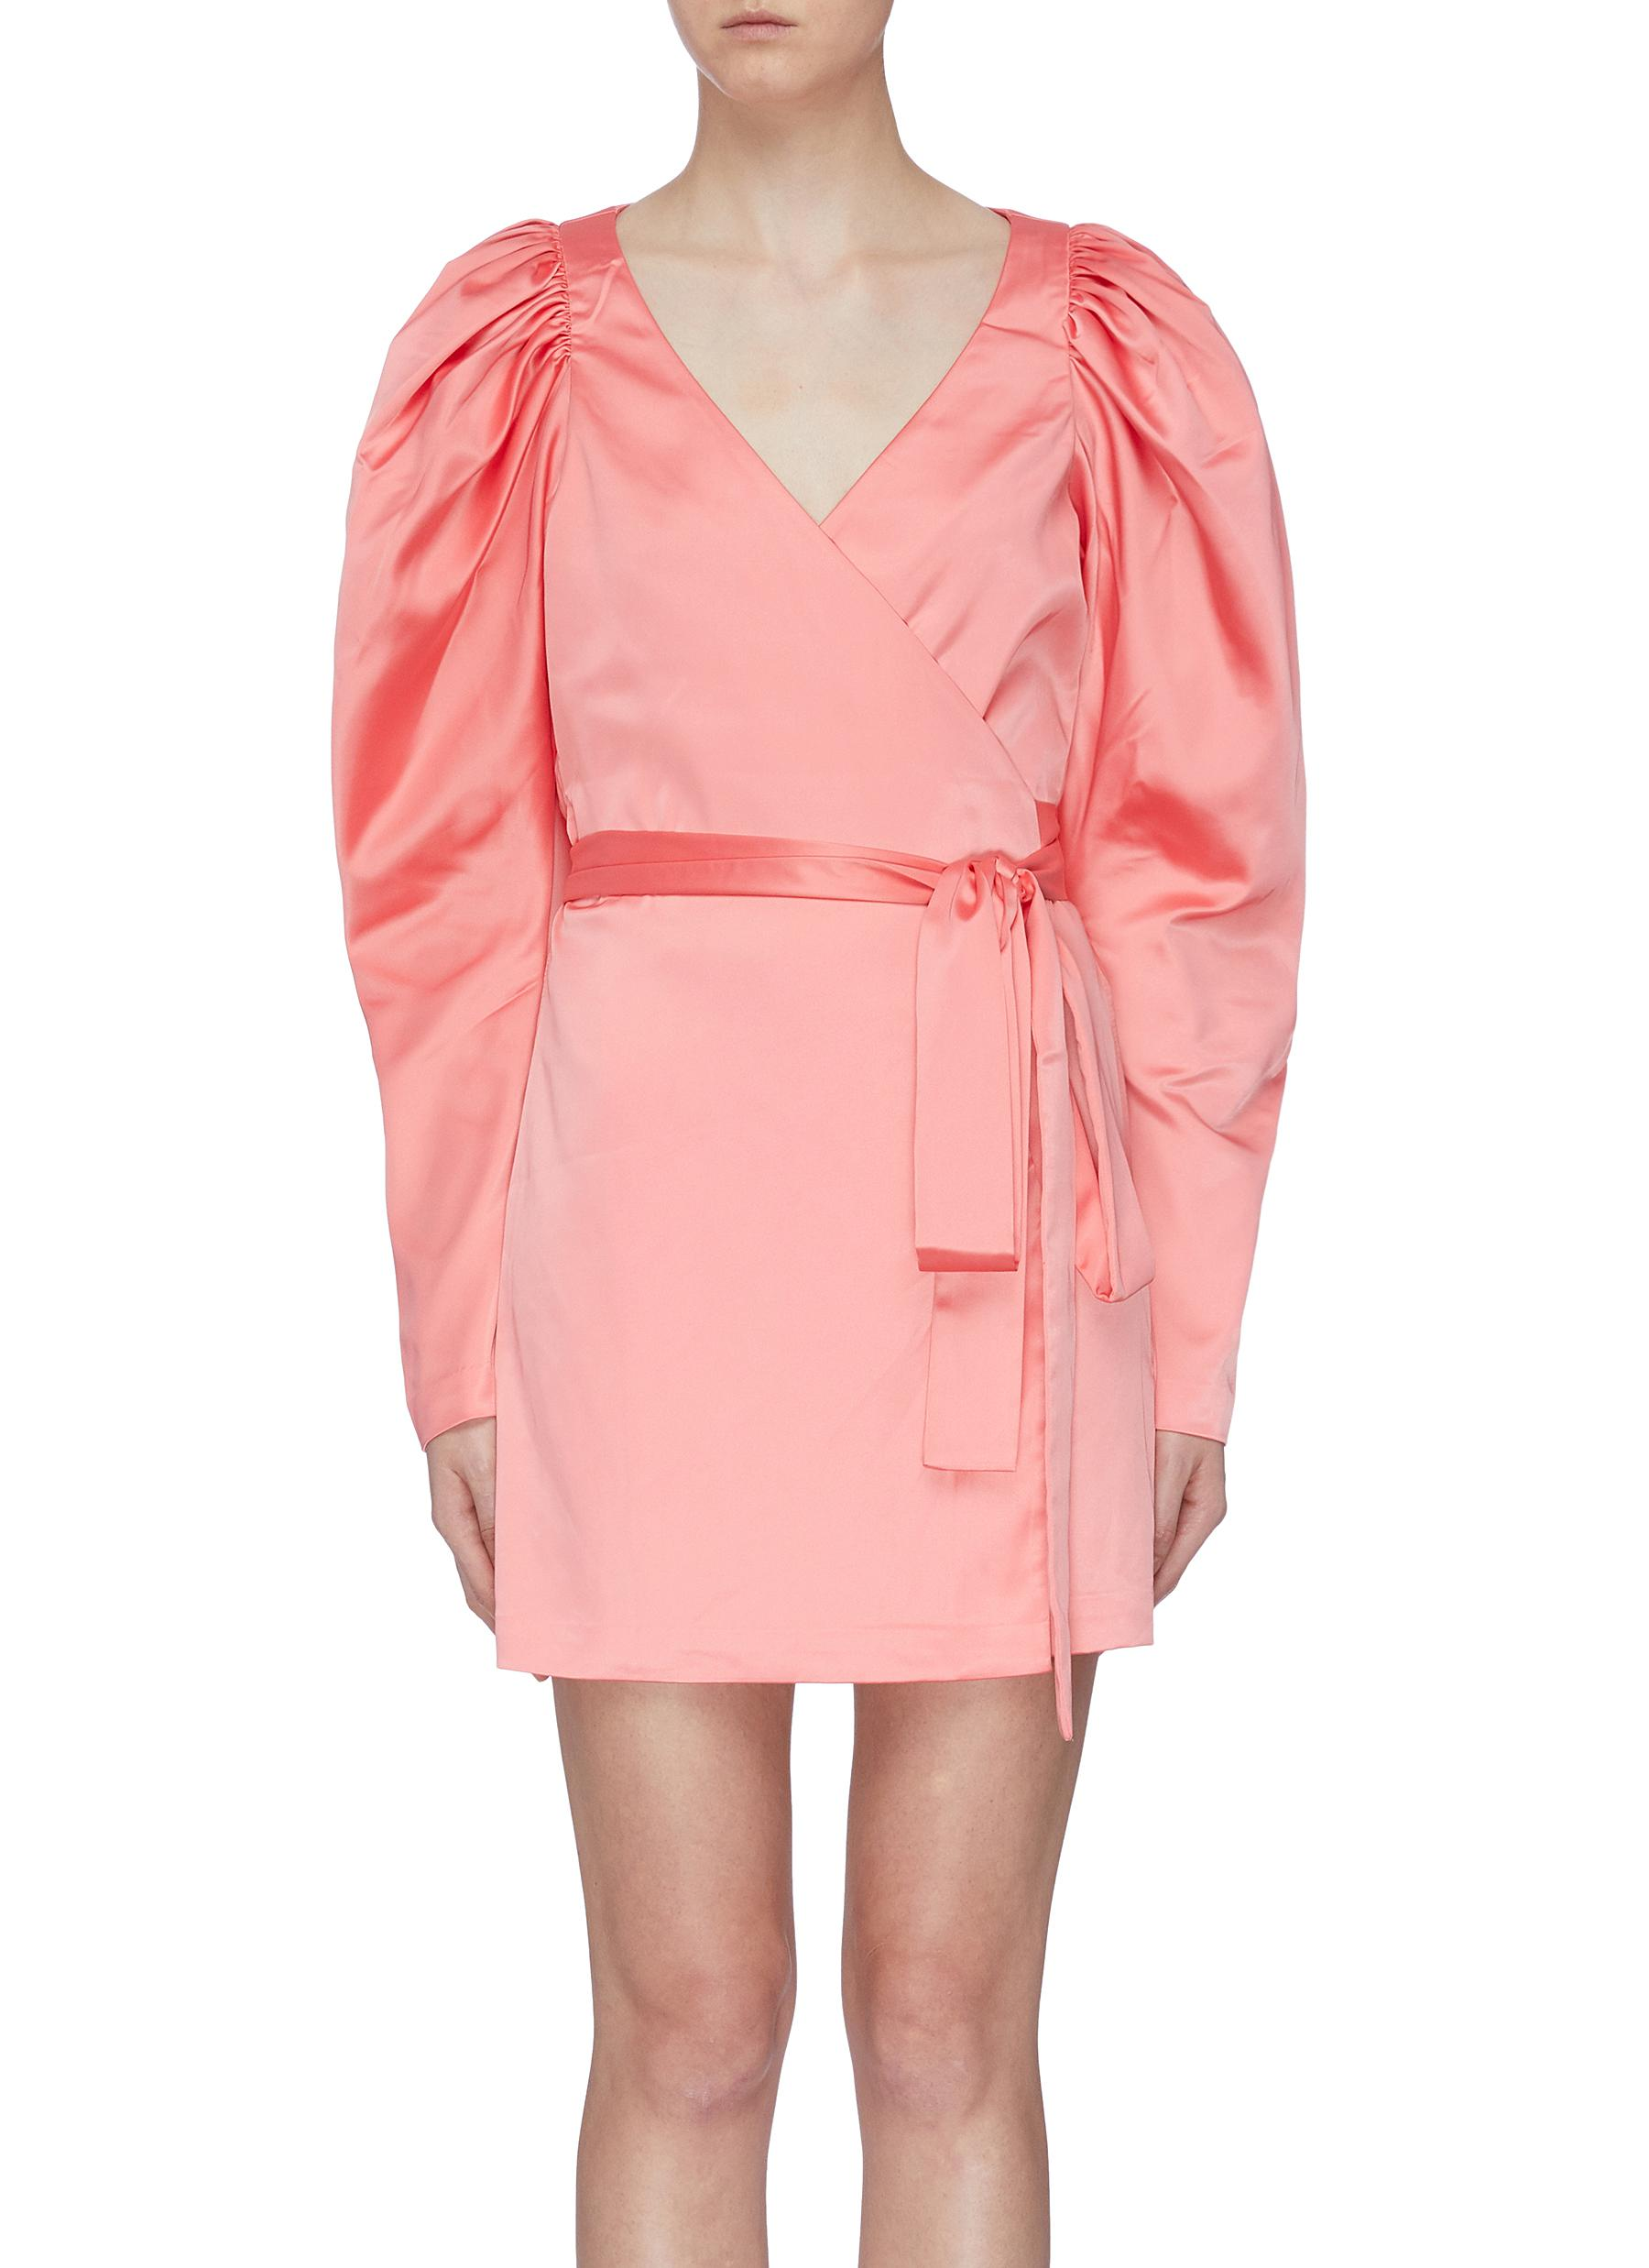 Number 31 belted puff sleeve mini wrap dress by Rotate